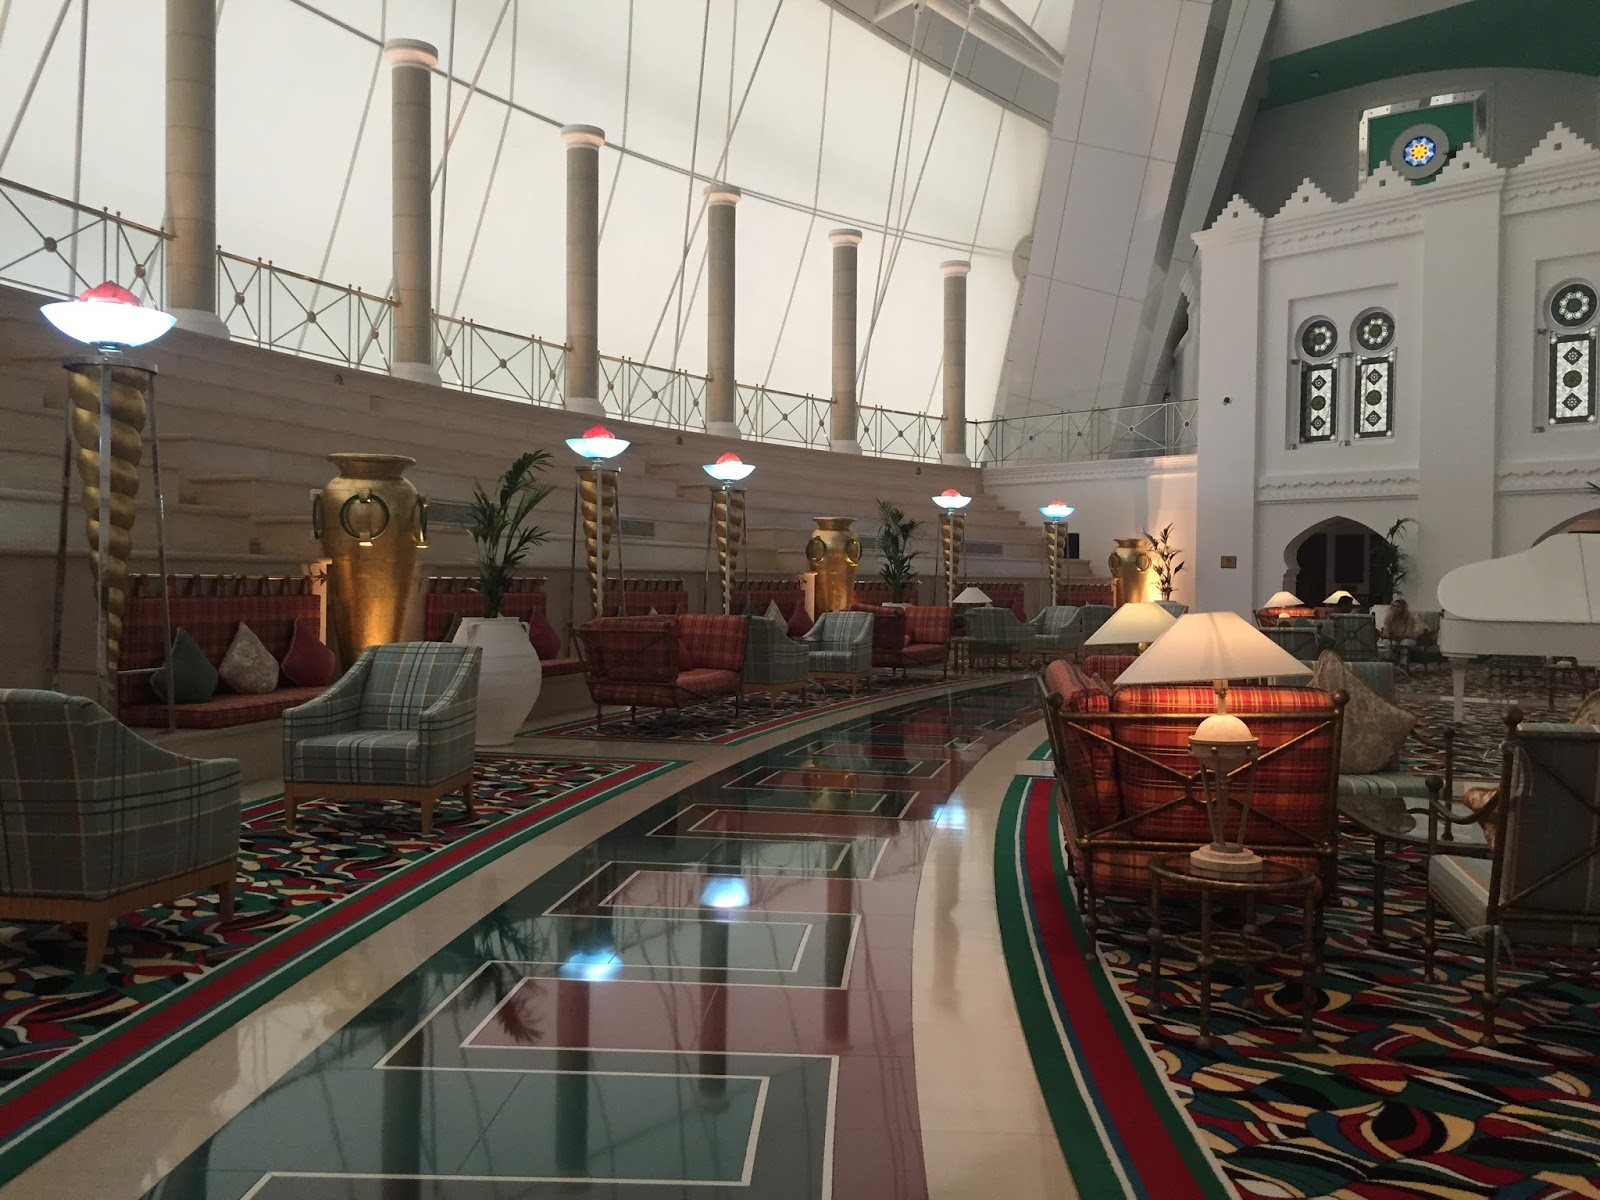 Burj Al Arab Review - The Room - Vegan Dubai Travel Spa